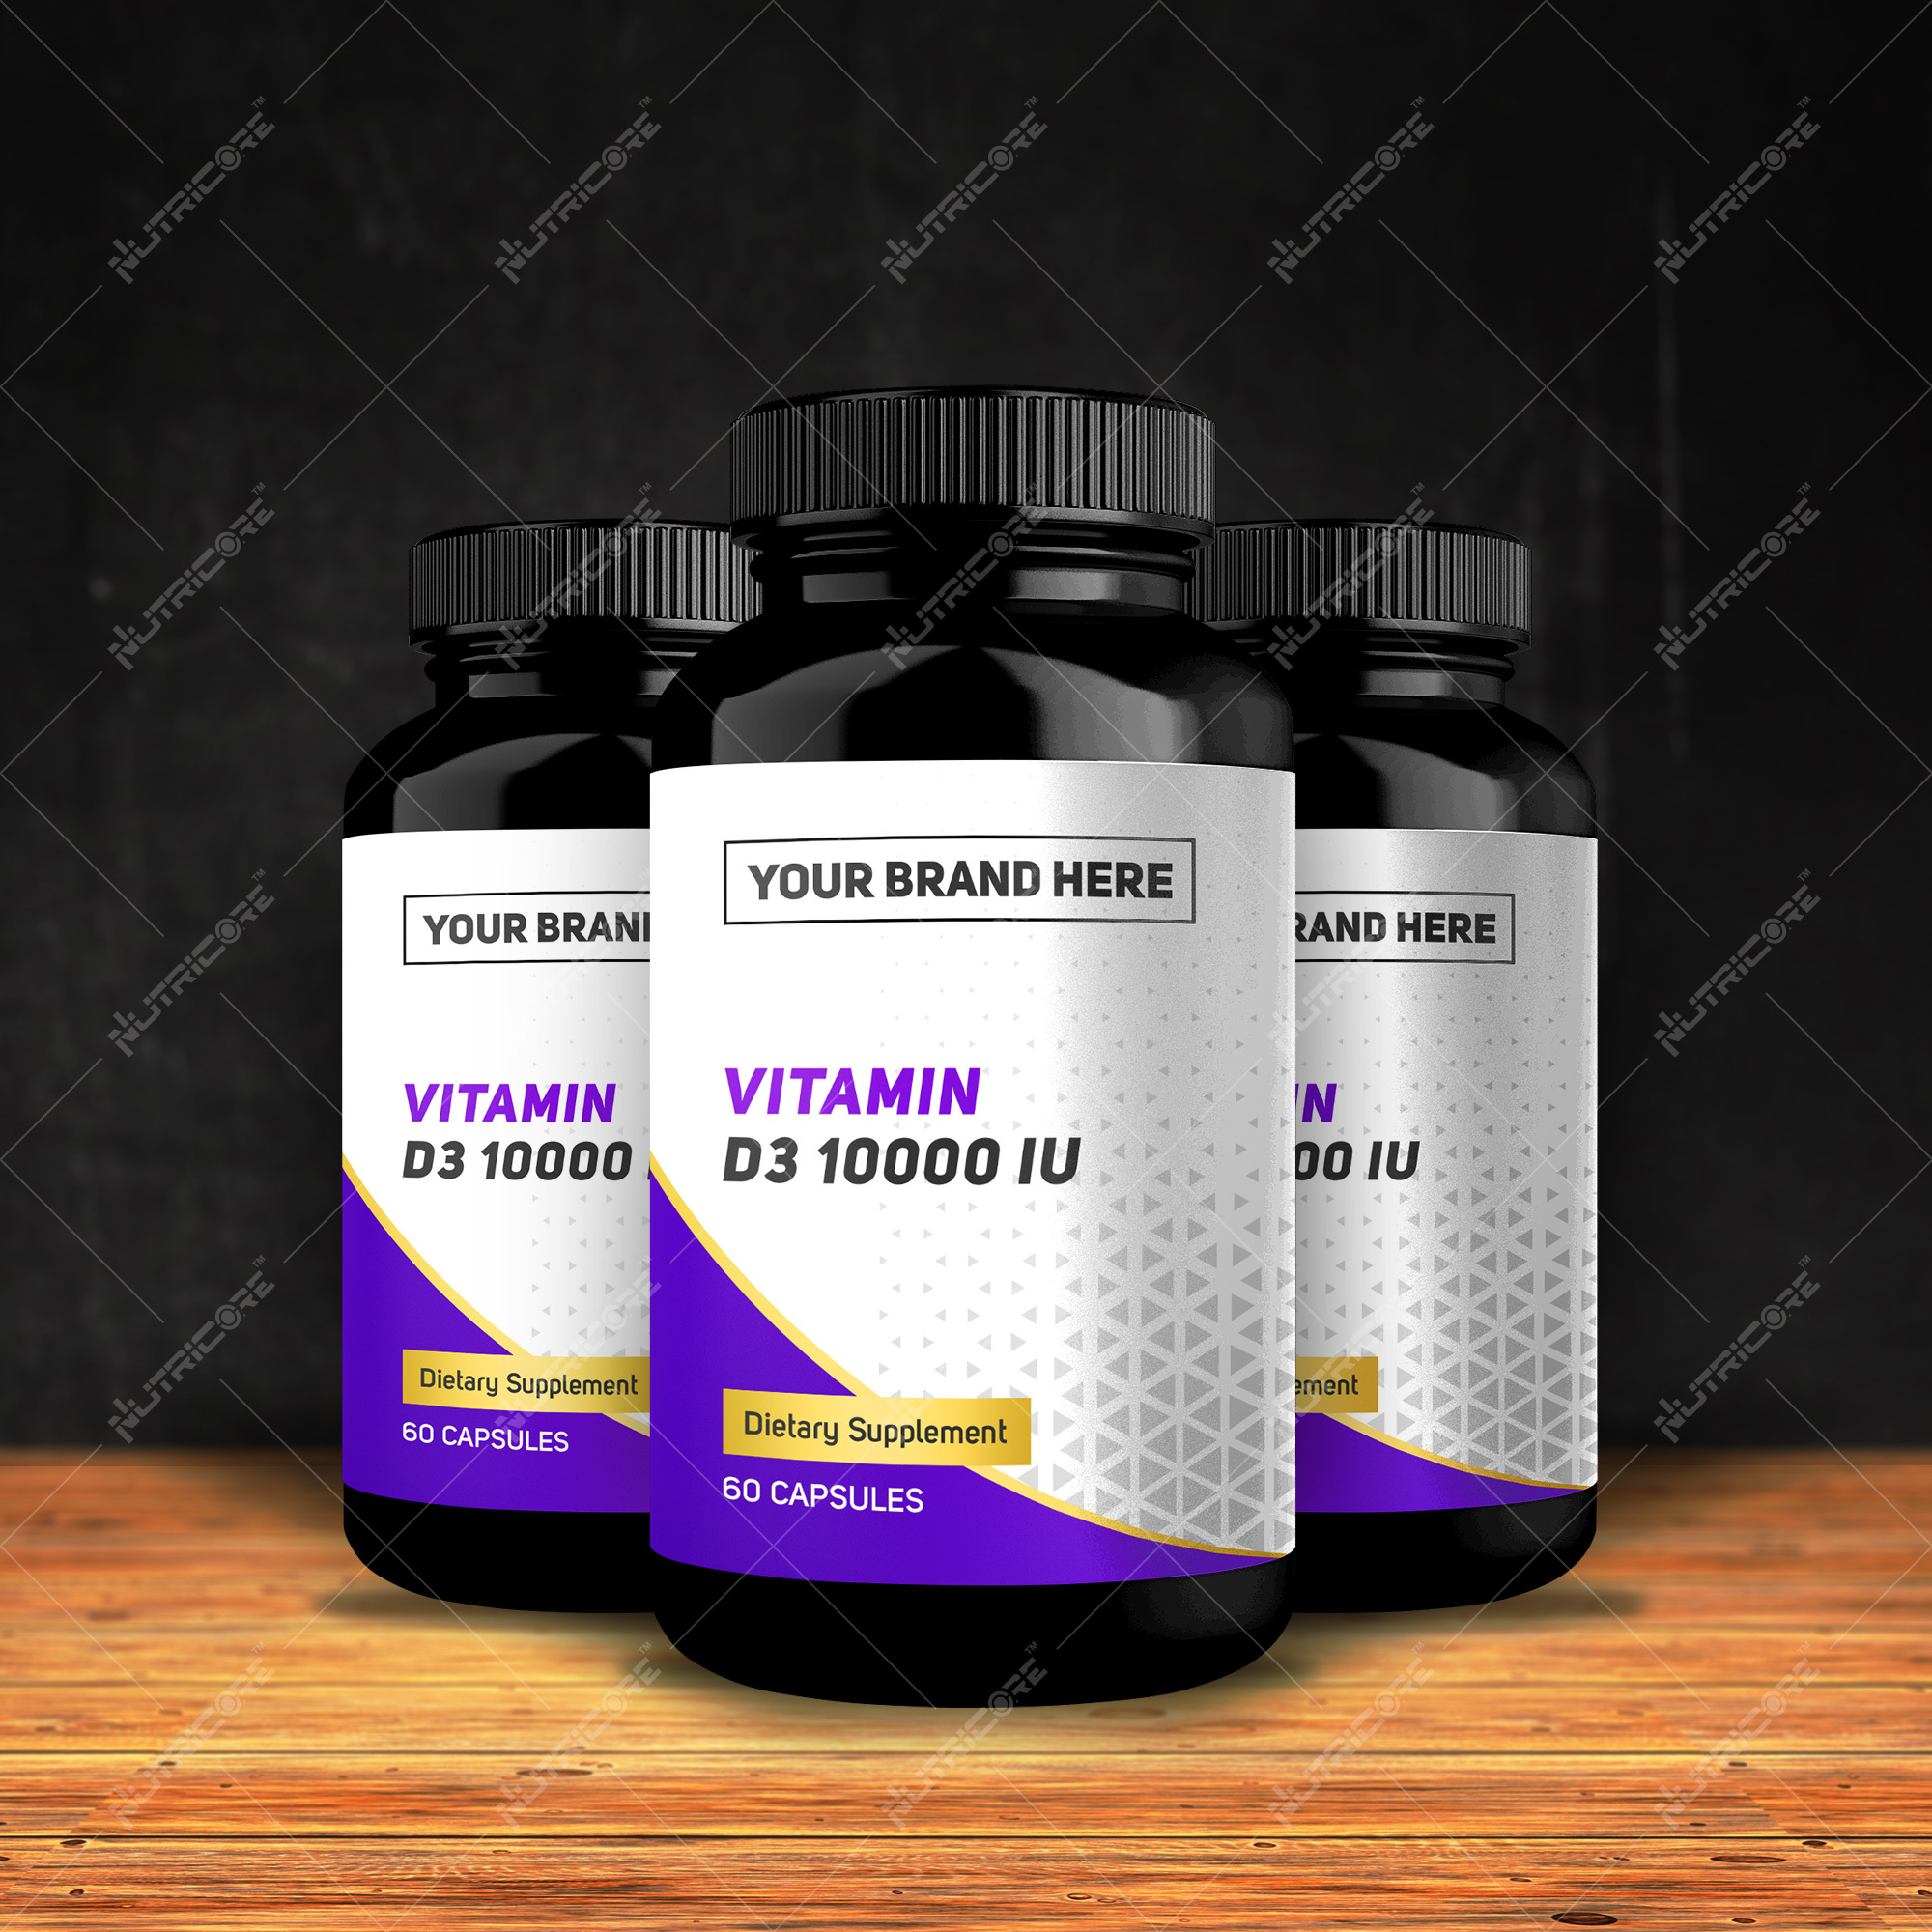 Private Label Vitamin D3 10,000 IU